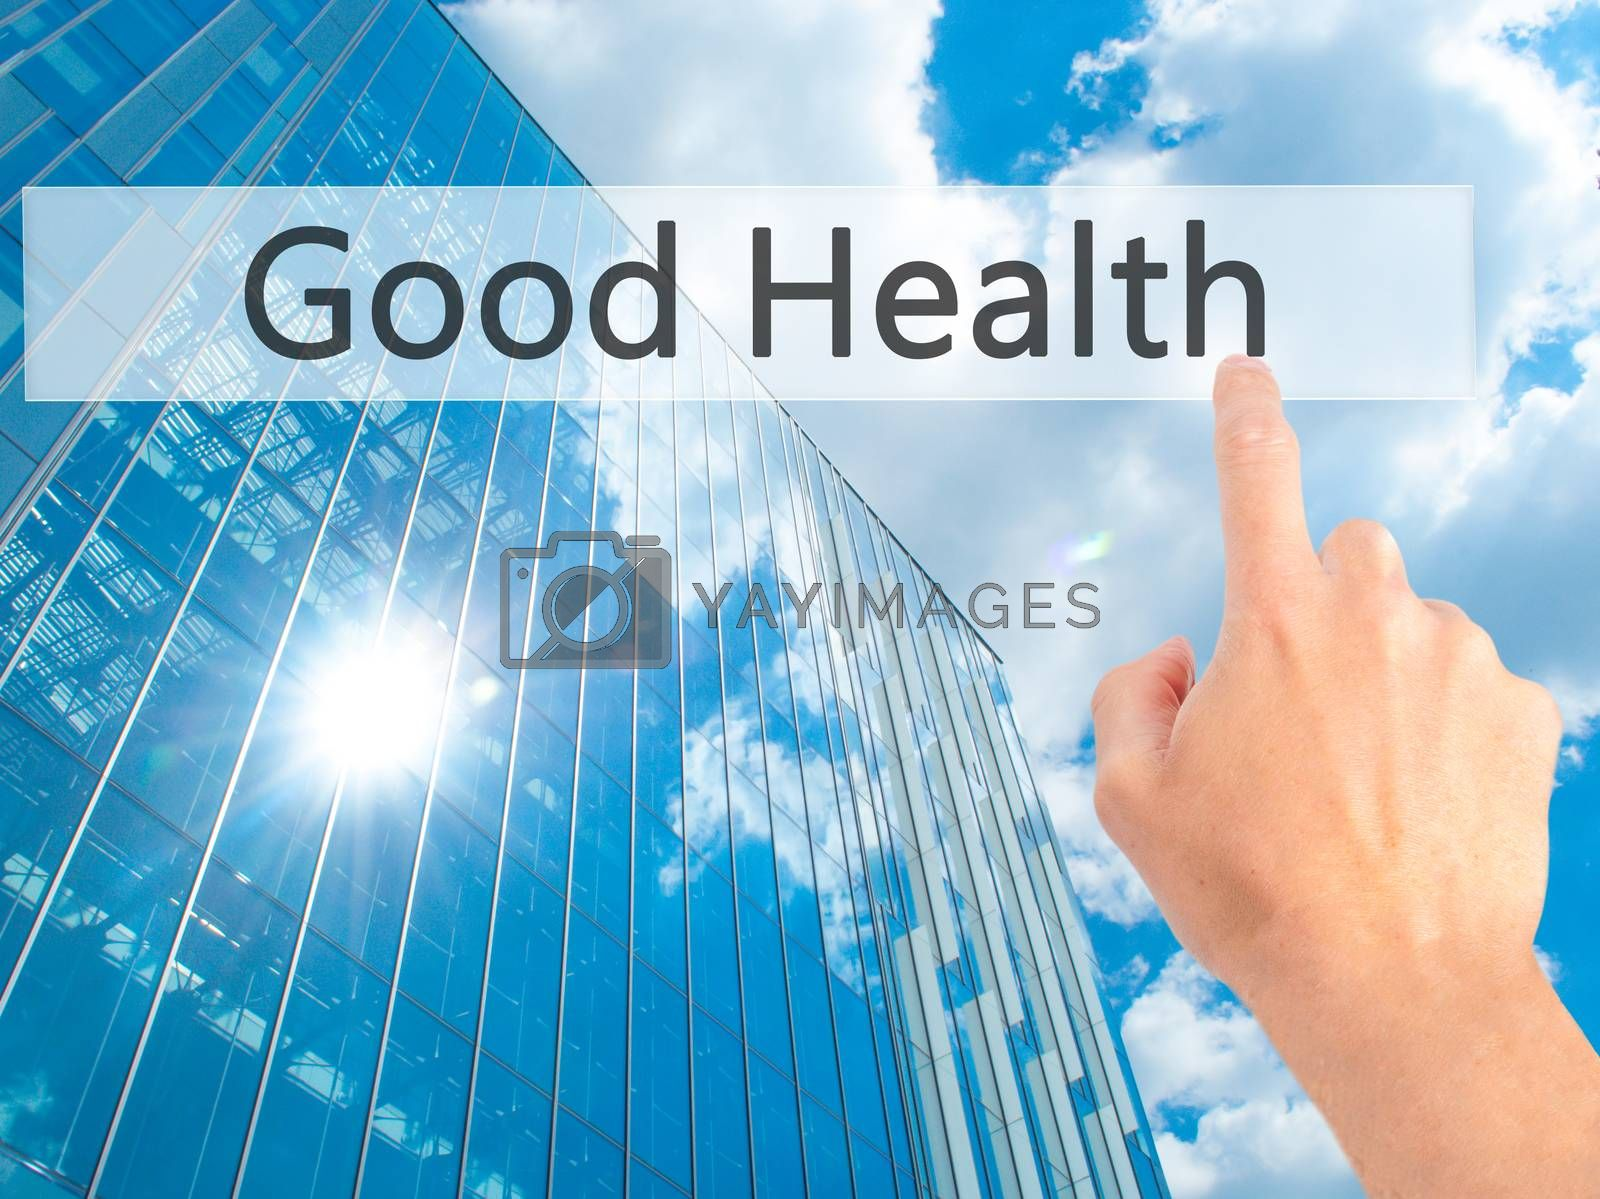 Good Health - Hand pressing a button on blurred background conce by jackald